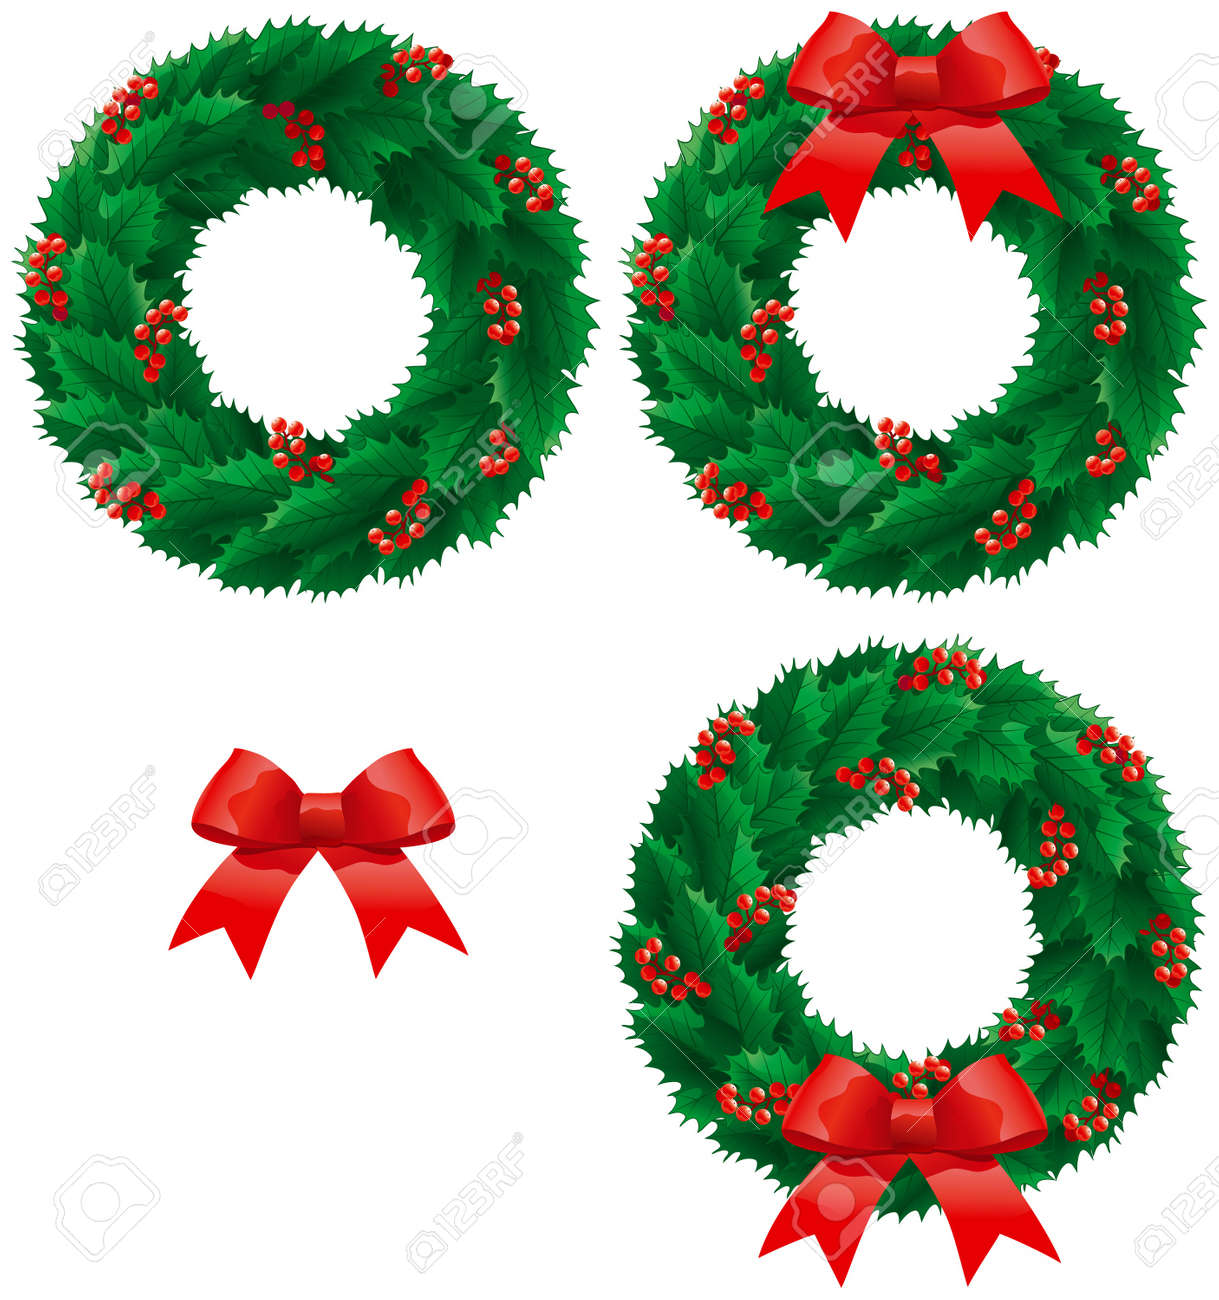 3,677 Christmas Wreath Vector Stock Vector Illustration And ...